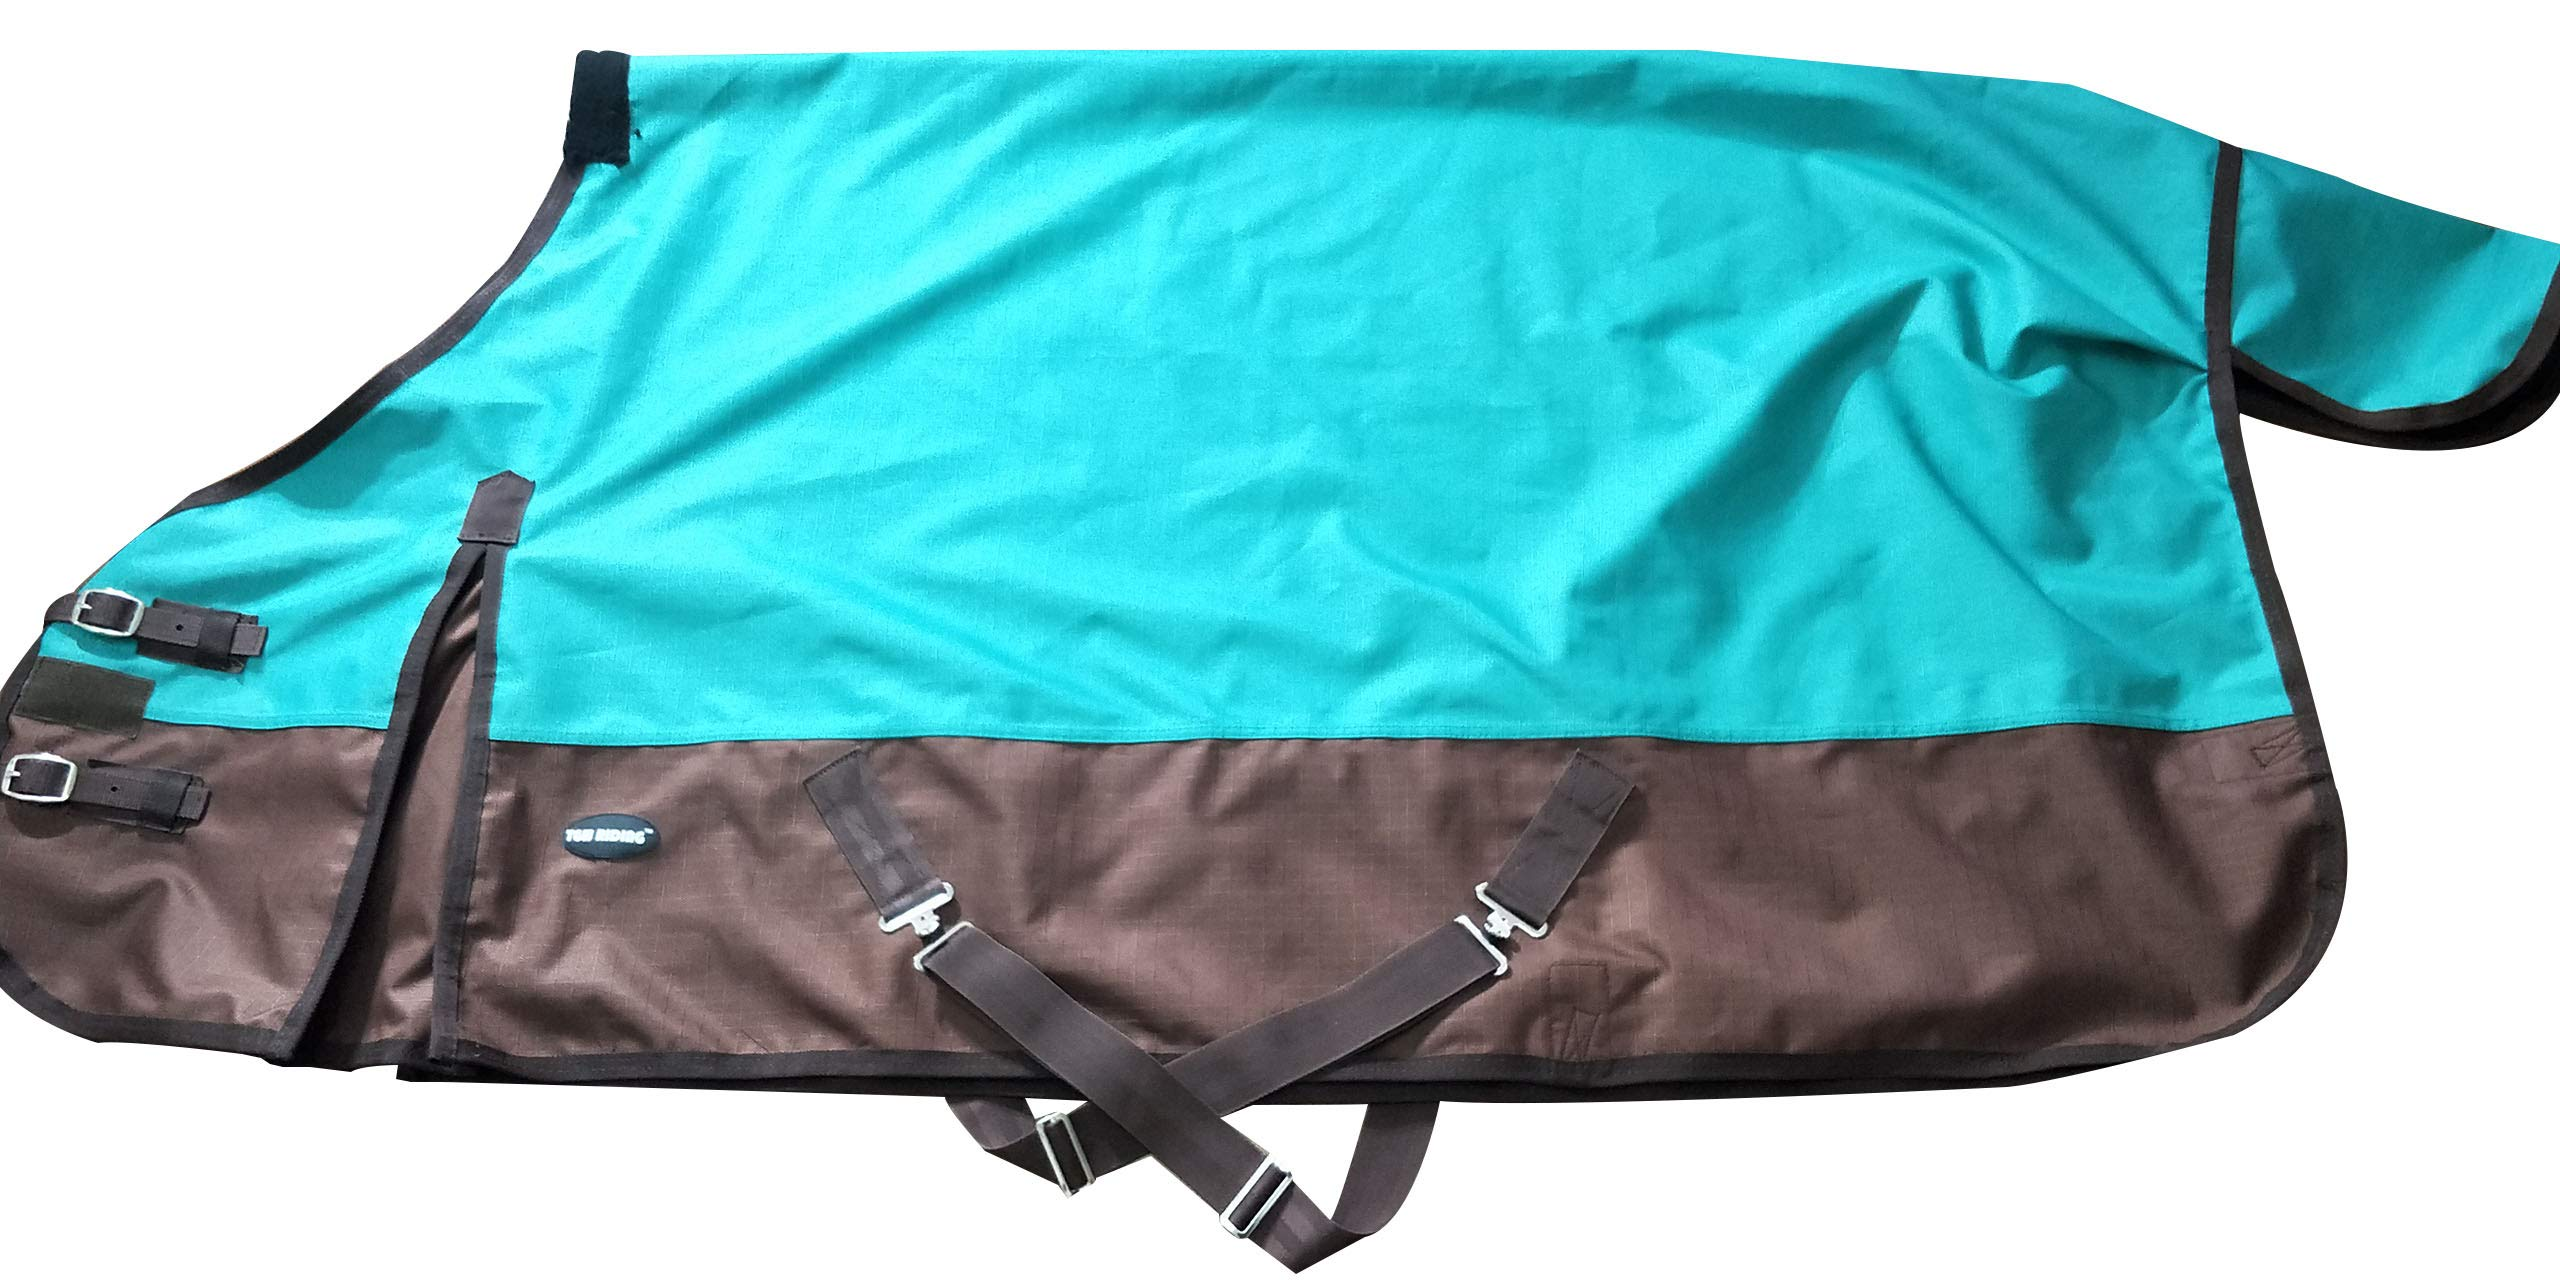 TGW RIDING 600 Denier Waterproof and Breathable Horse Turnout Sheet (82, Turquoise) Size from 68 to 82